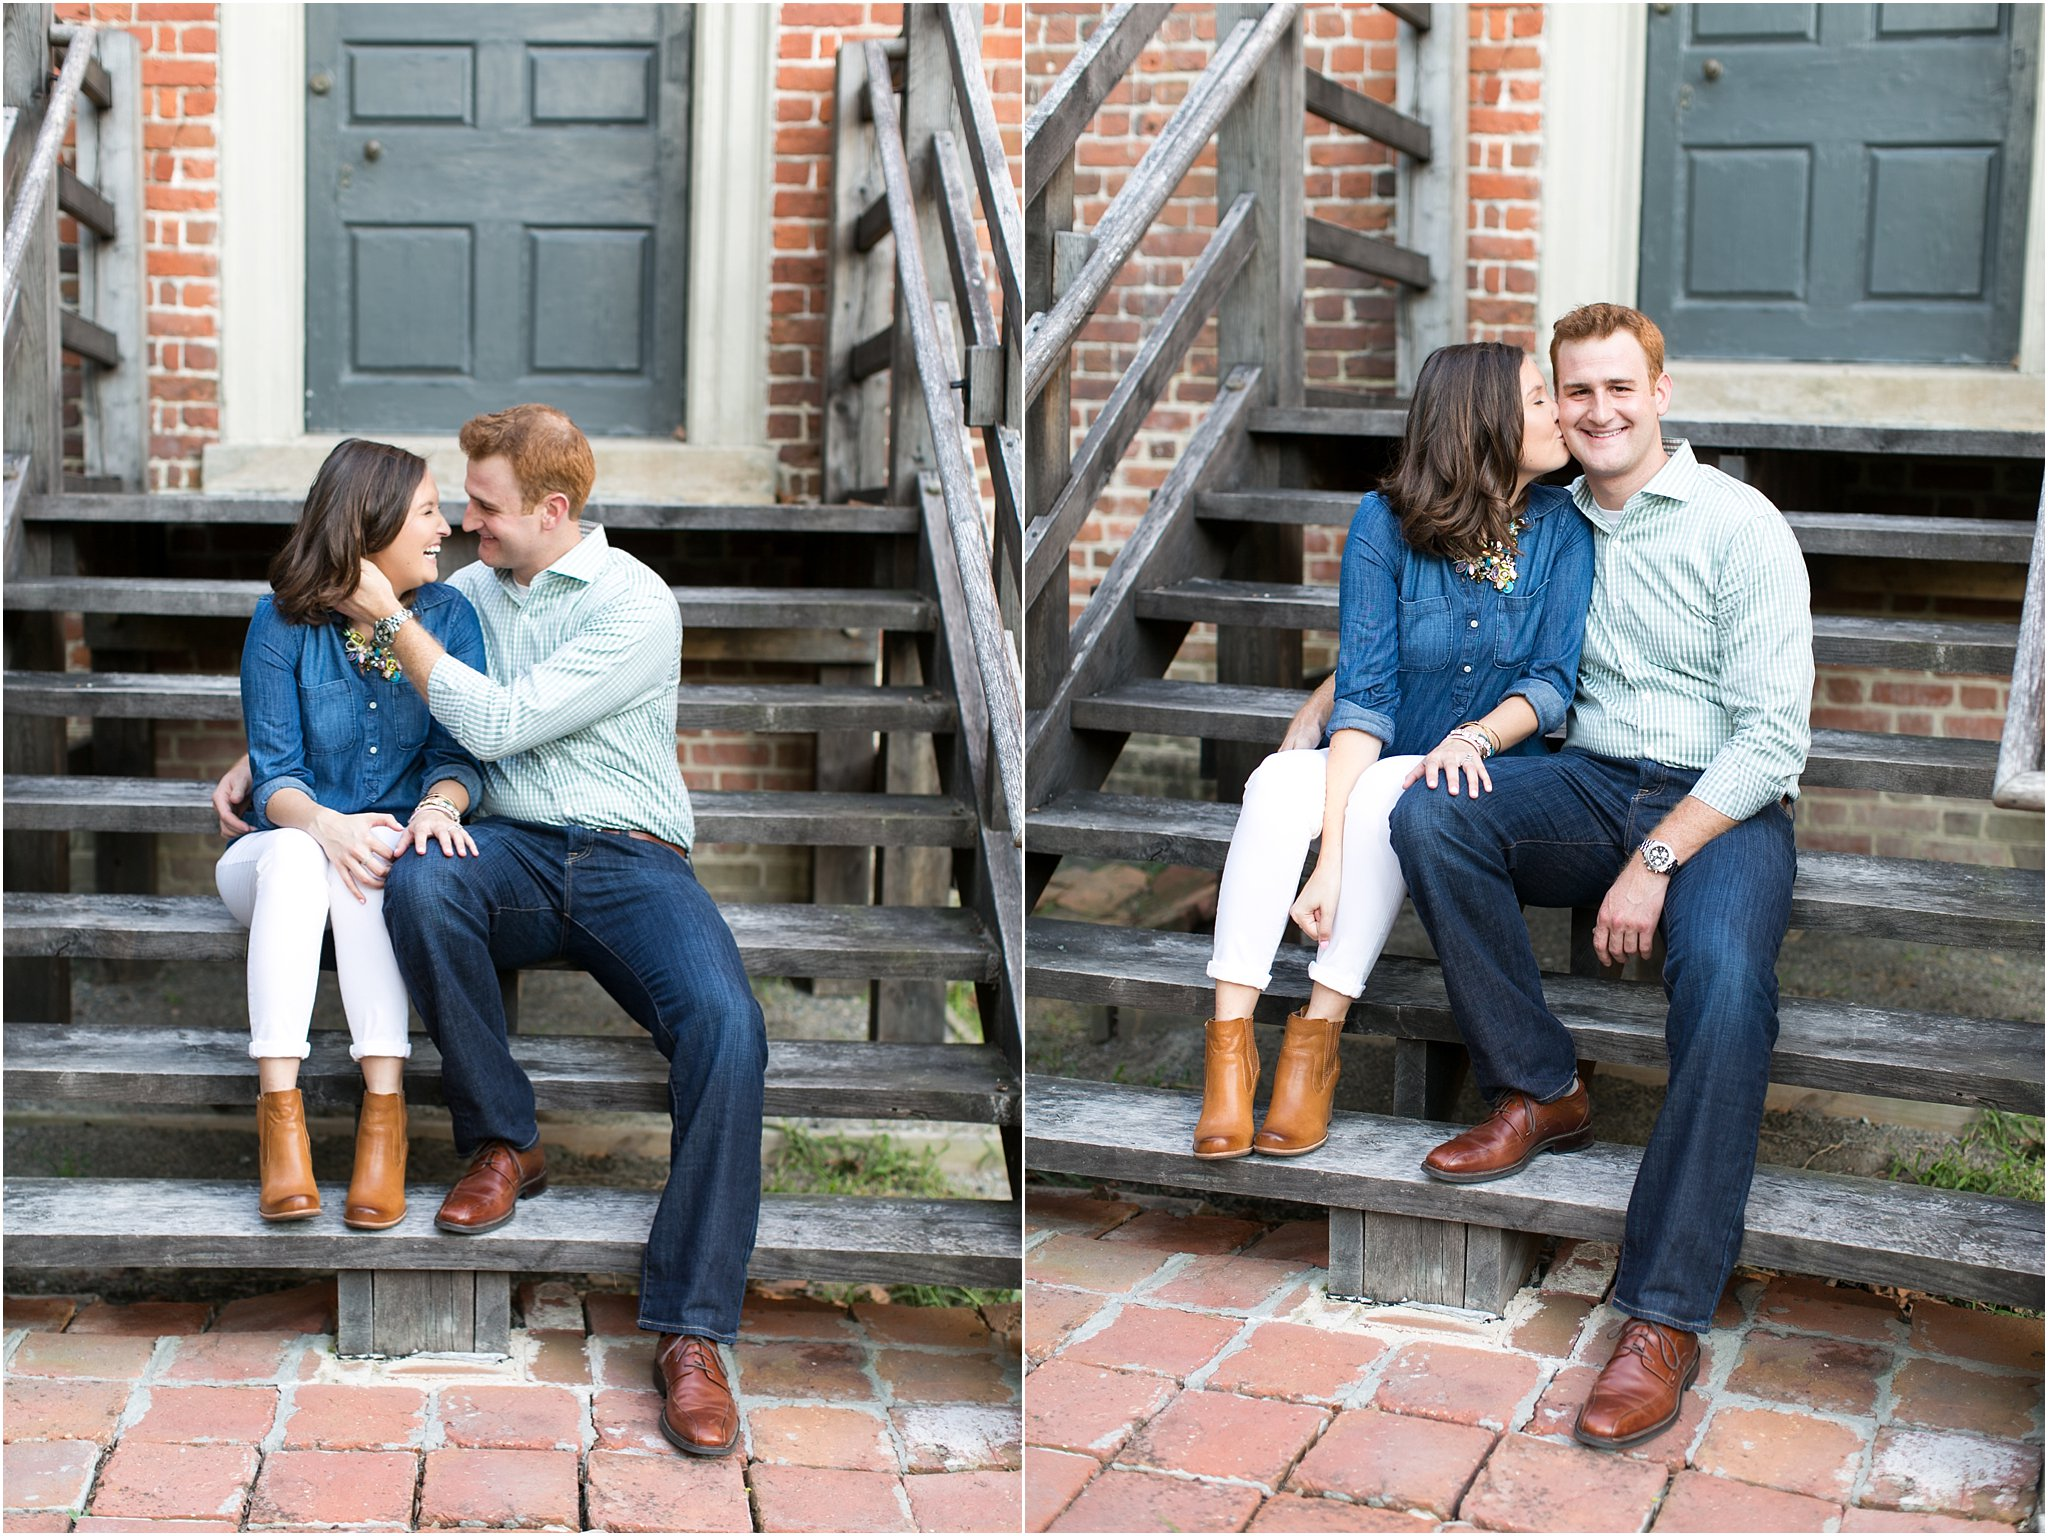 jessica_ryan_photography_virginia_virginia_beach_francis_land_house__portraits_bride_and_groom_beloved_historical_home_engagement_portraits_candid_authentic_engagements_2722